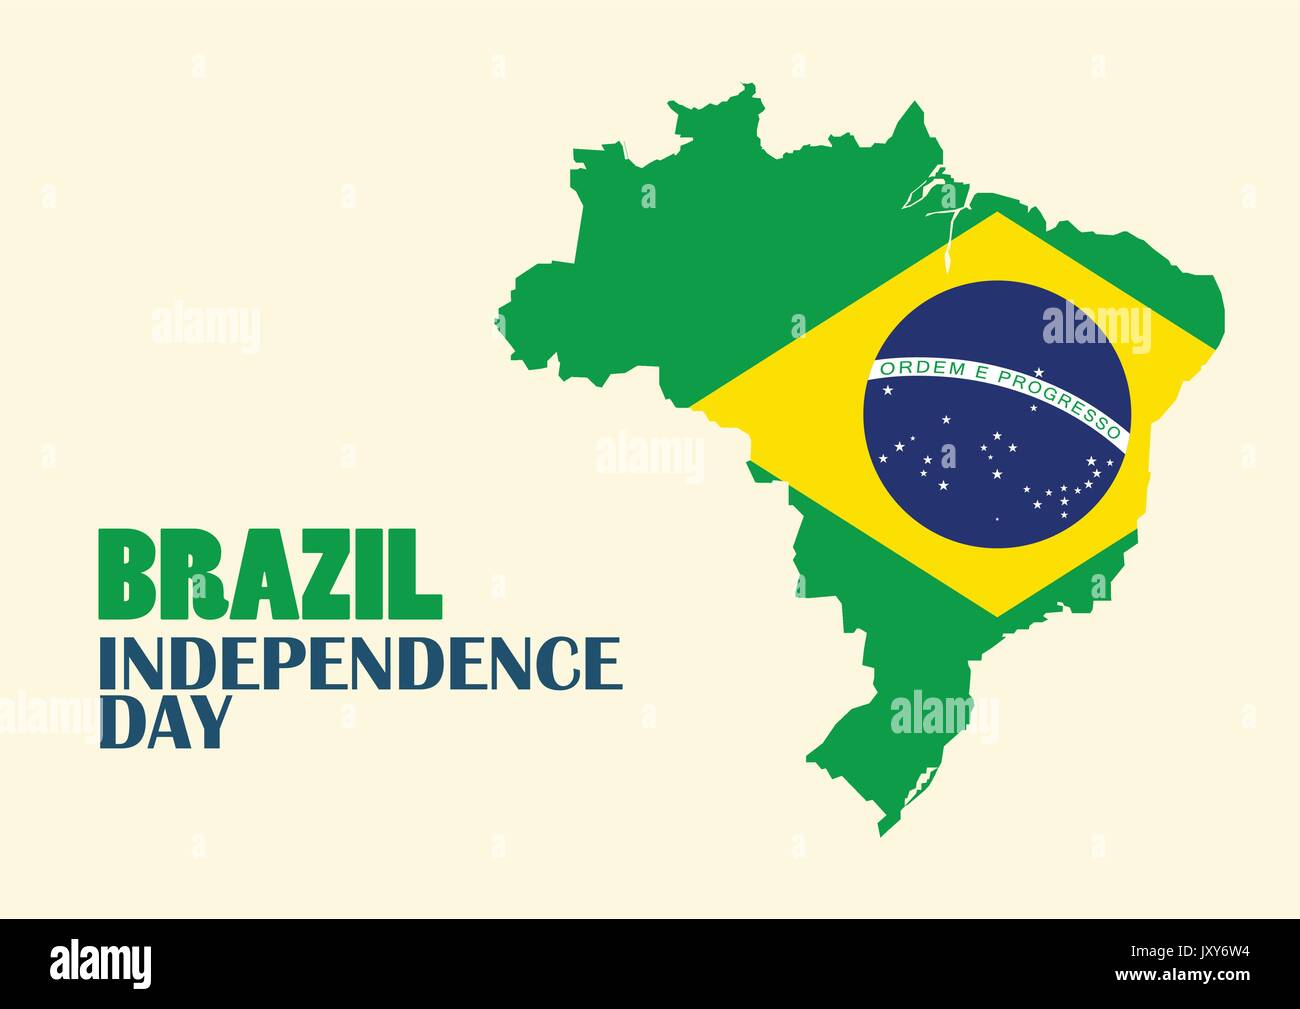 the independence of brazil